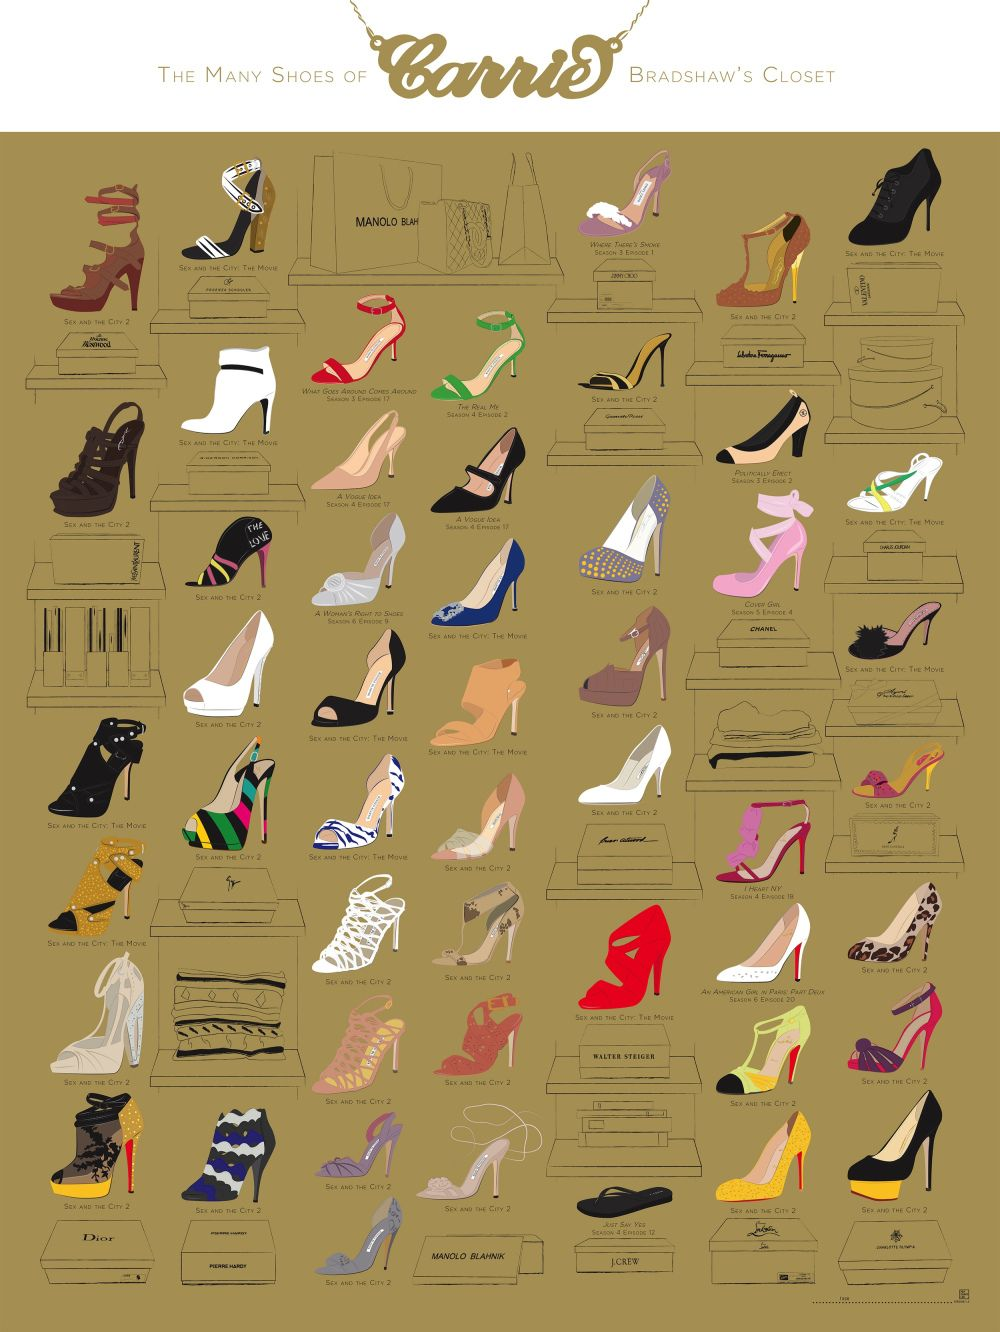 Homage to Carrie's shoe closet. Love love love this!